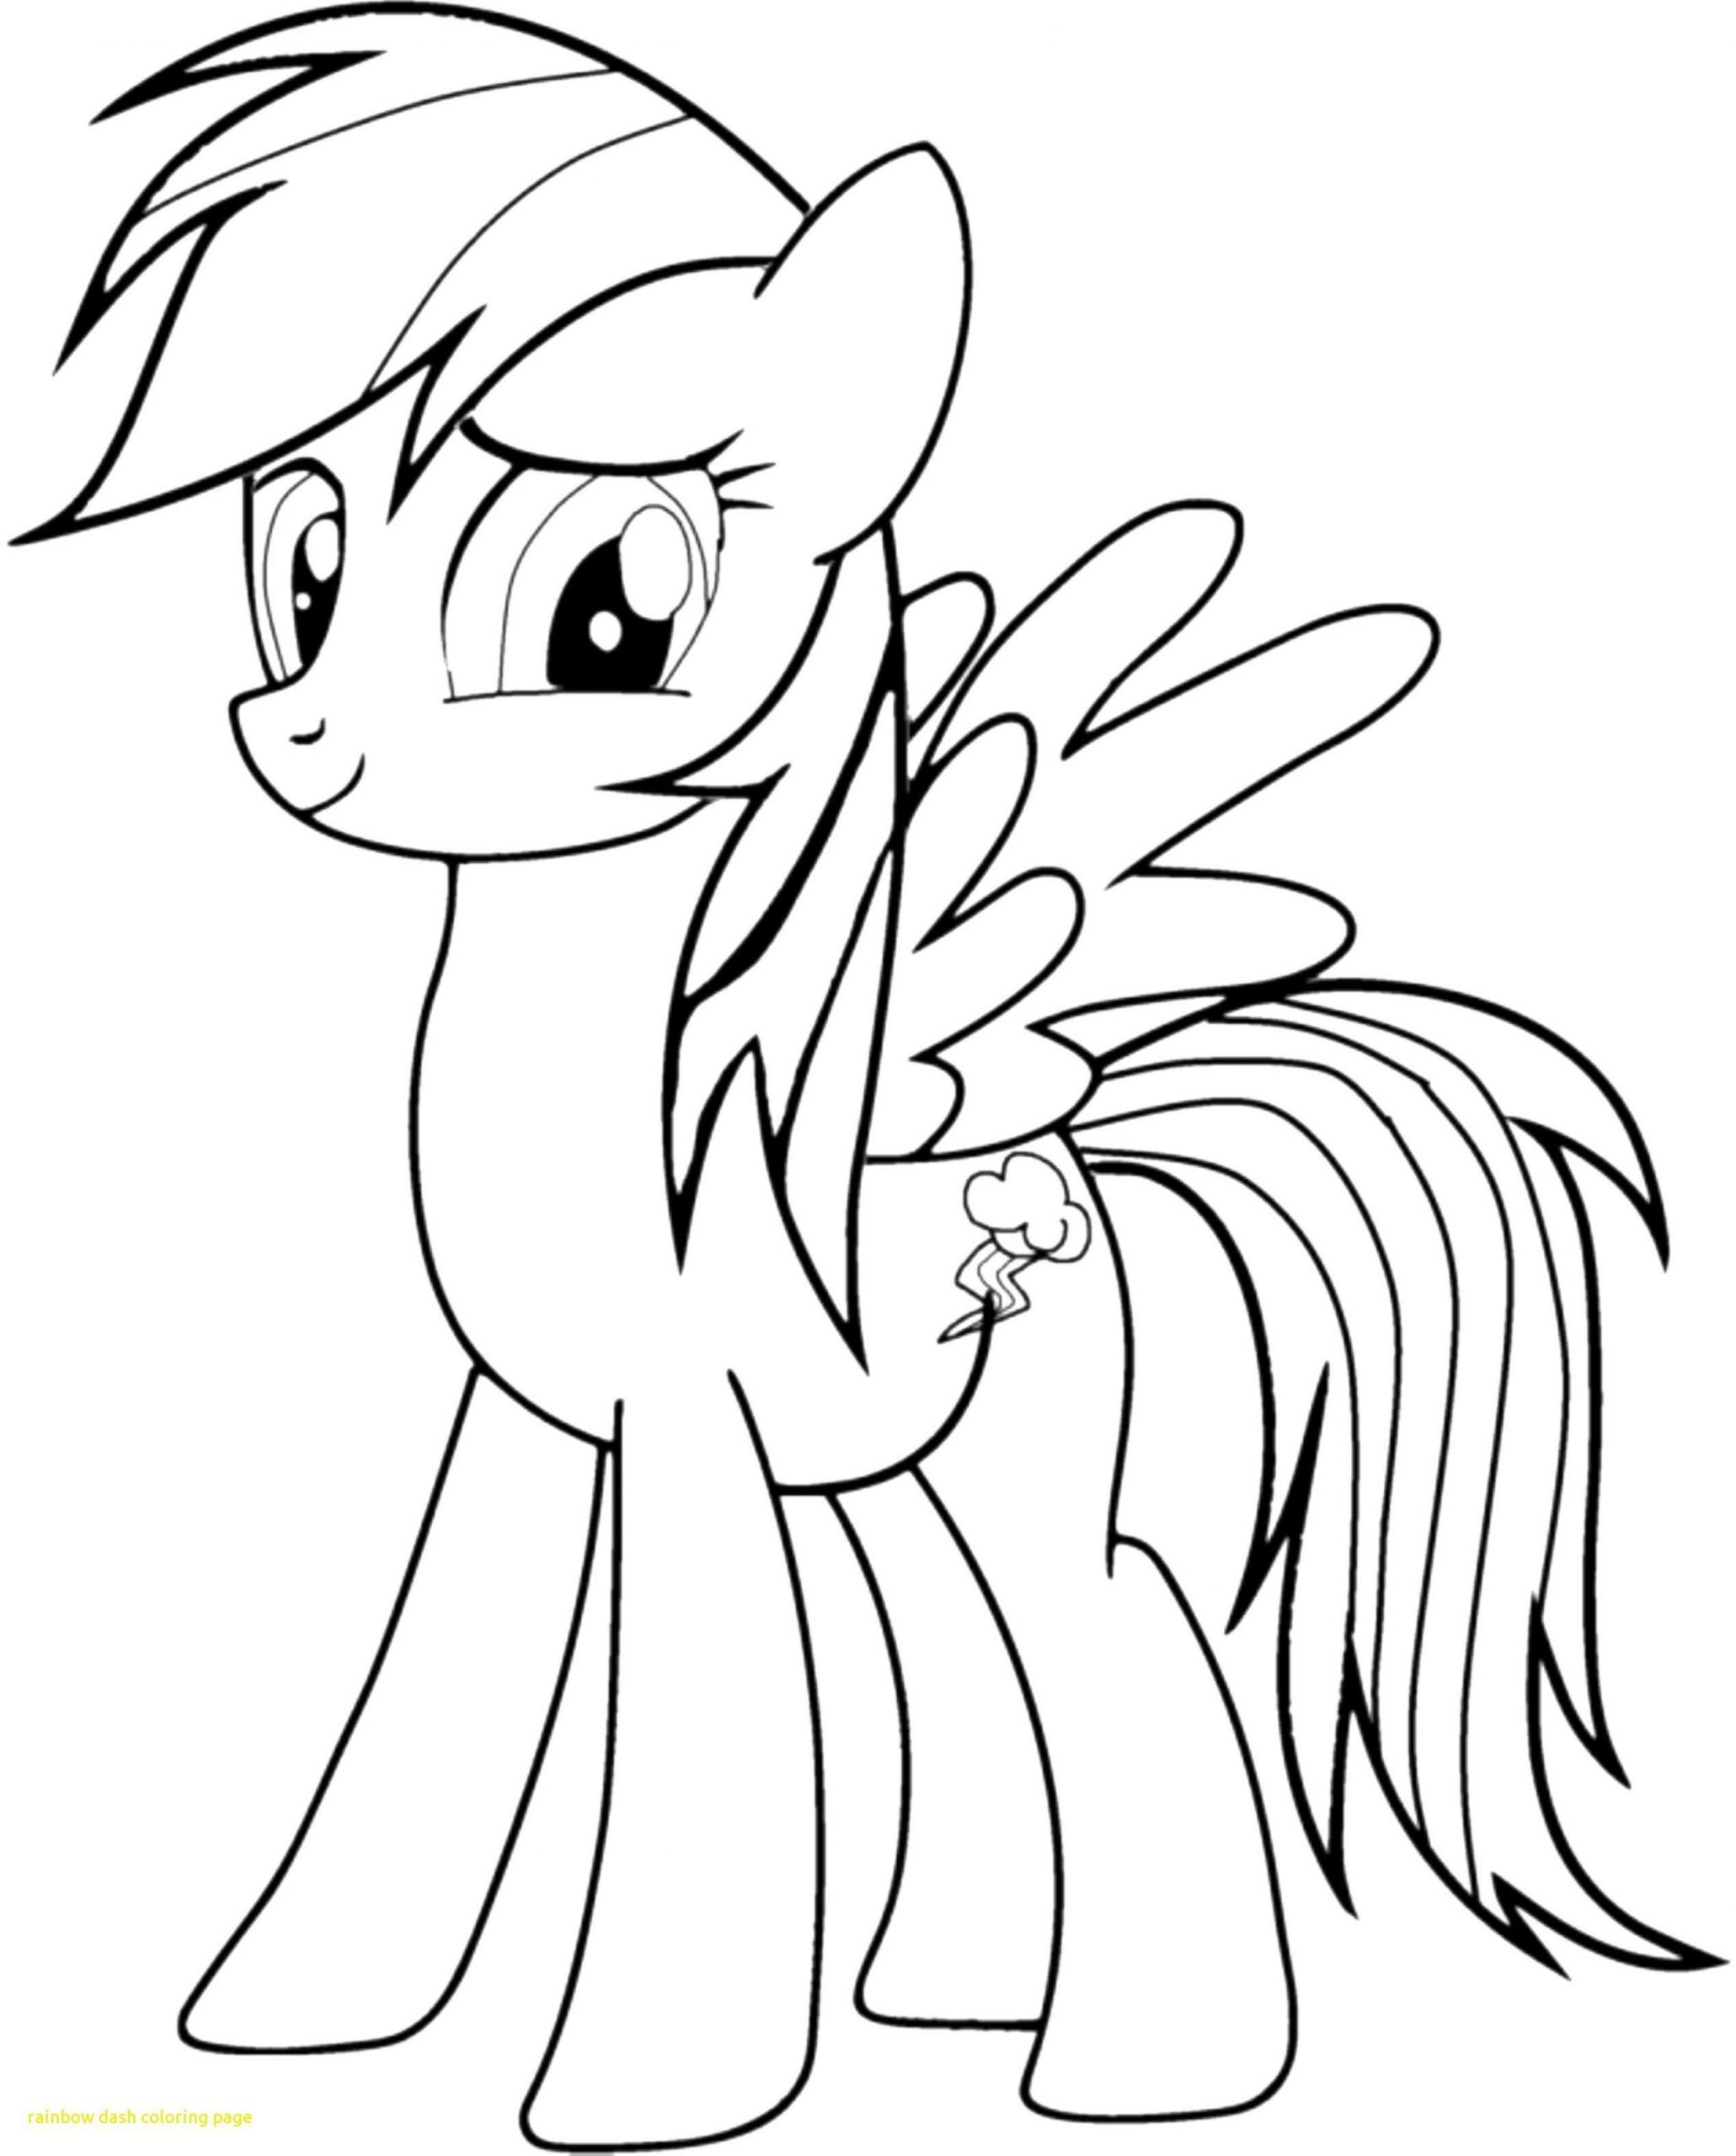 12 Top Rainbow Dash Coloring Pages Horse Coloring Pages My Little Pony Coloring Cartoon Coloring Pages